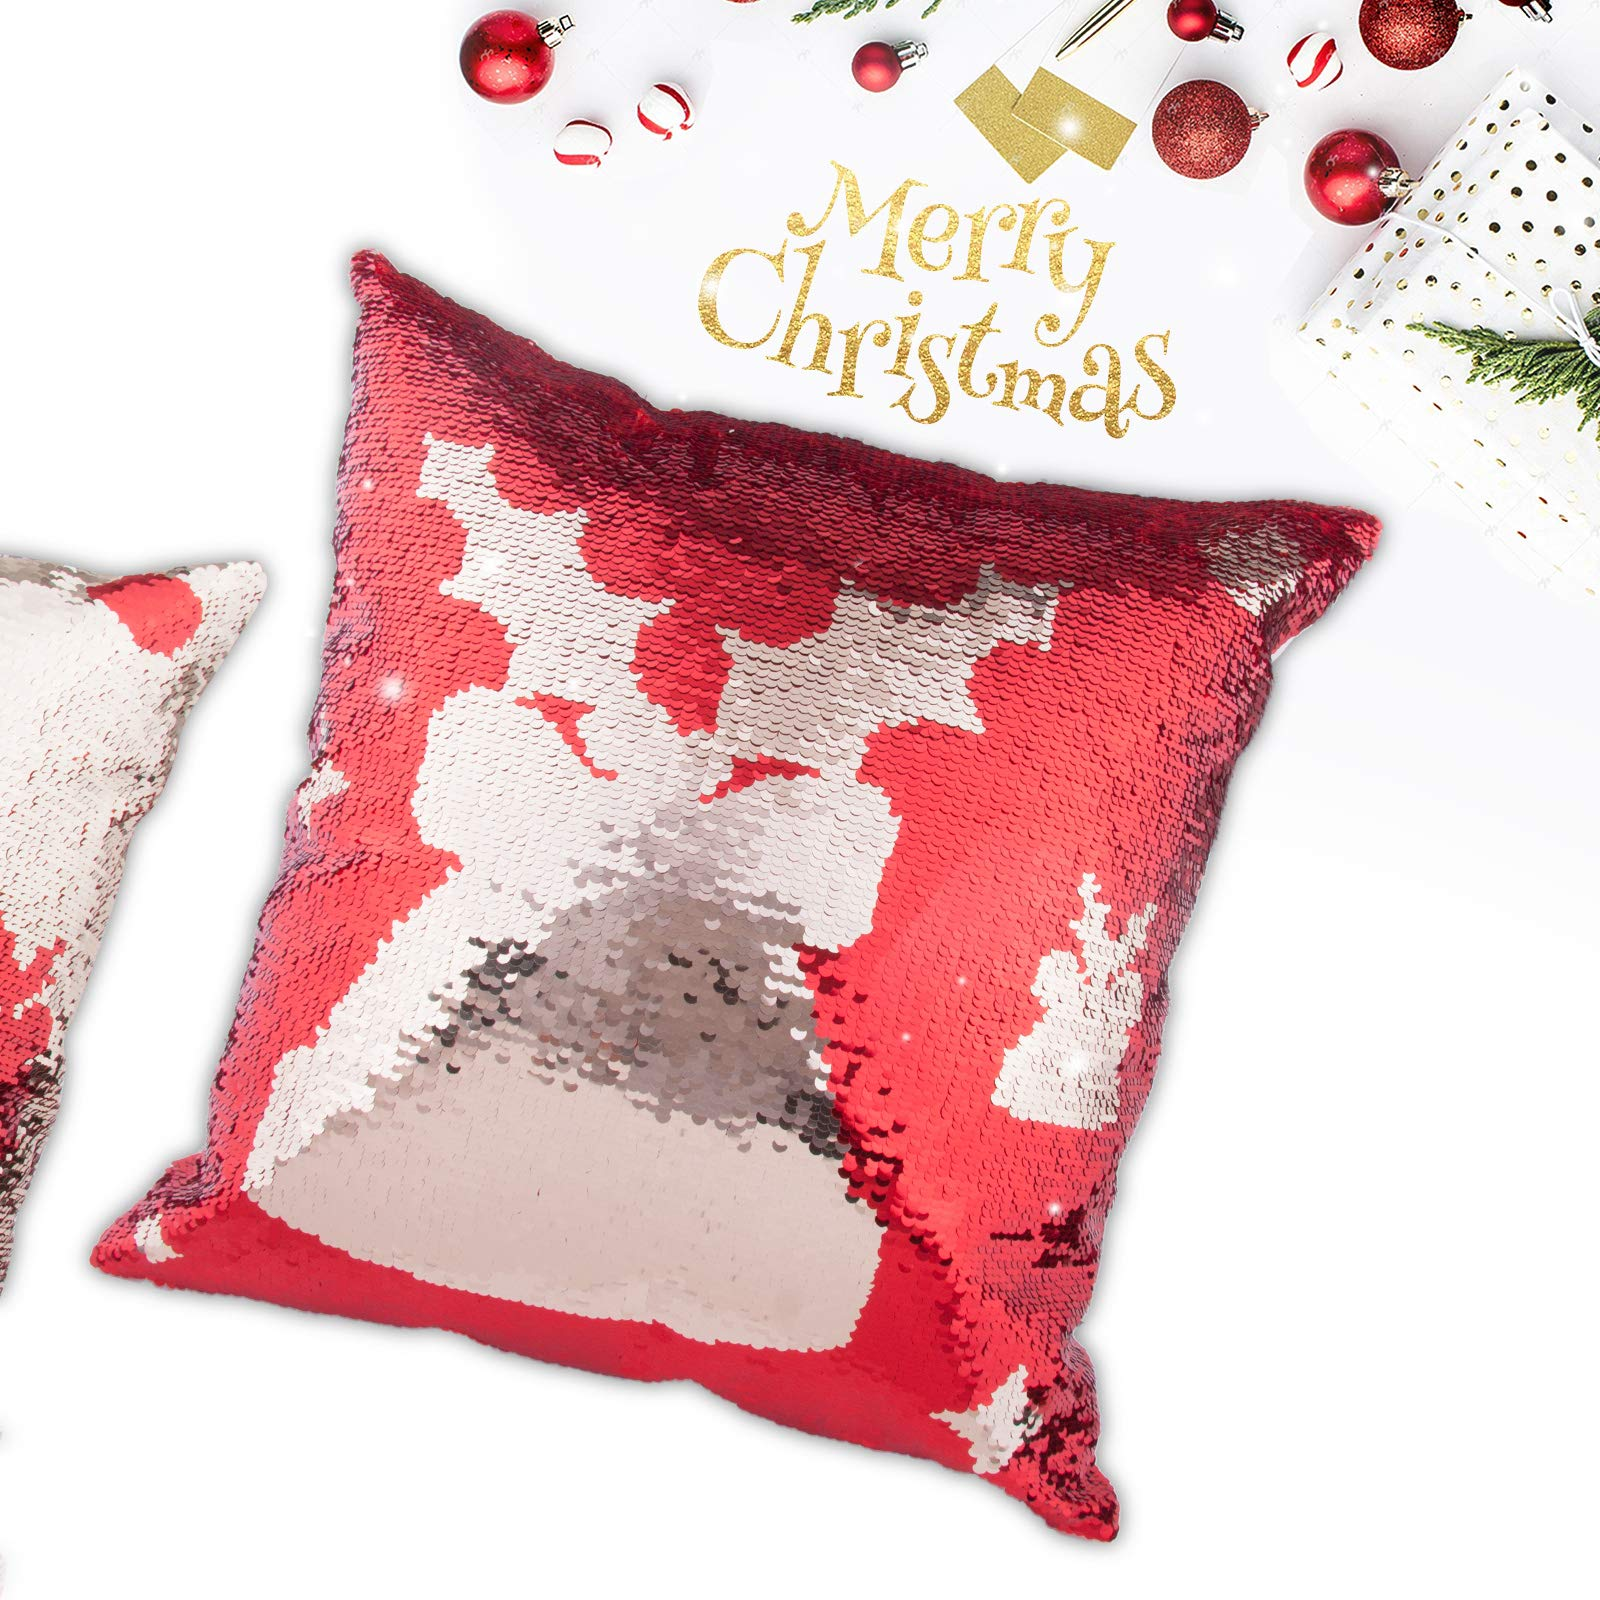 Moonen Bling Shining Merry Christmas Jingle Bell Pillow Case Throw Cushion Cover Sparkling Glitter Sequins Gift Home Decor Pillow Decorations for Christmas New Year (16x16)